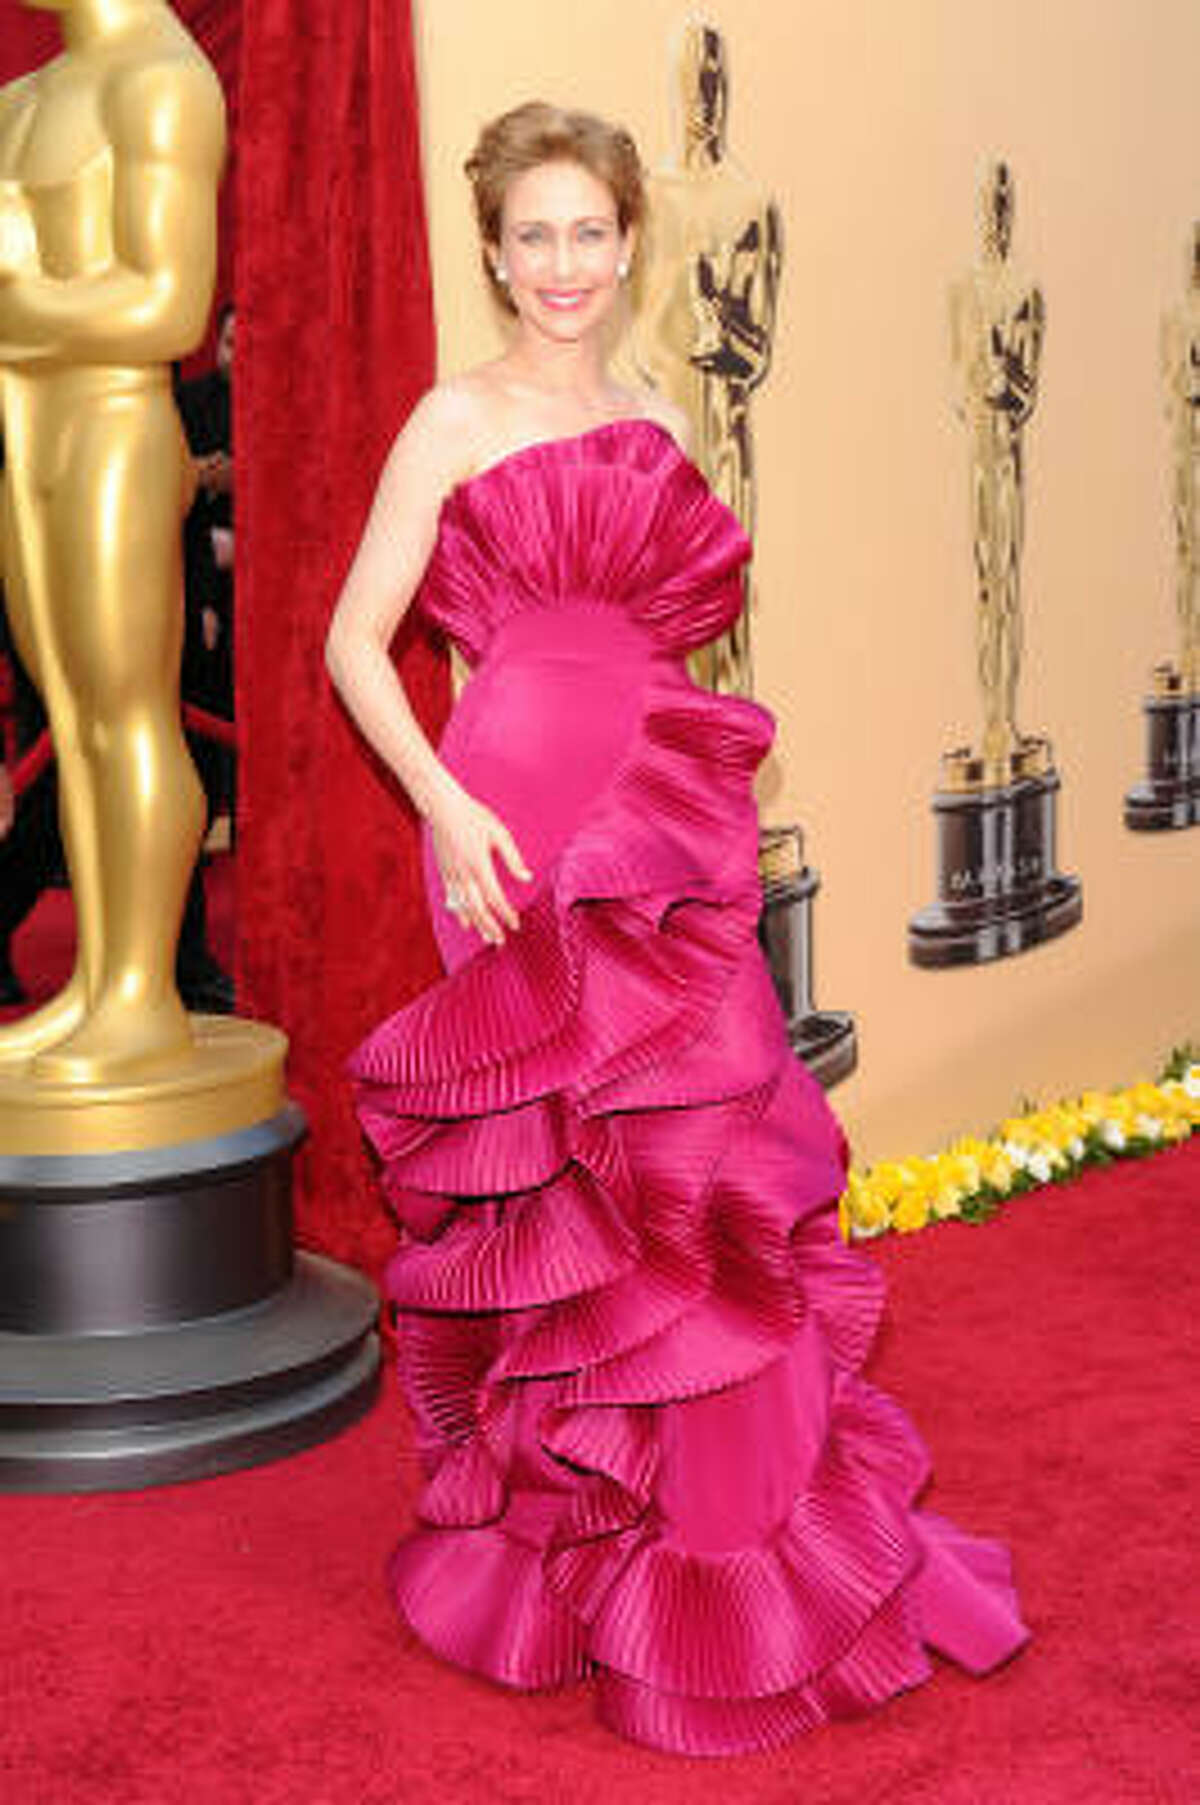 FLOWER OR FASHION? Vera Farmiga wears a fuchsia Marchesa ruffle gown that is almost too overpowering.